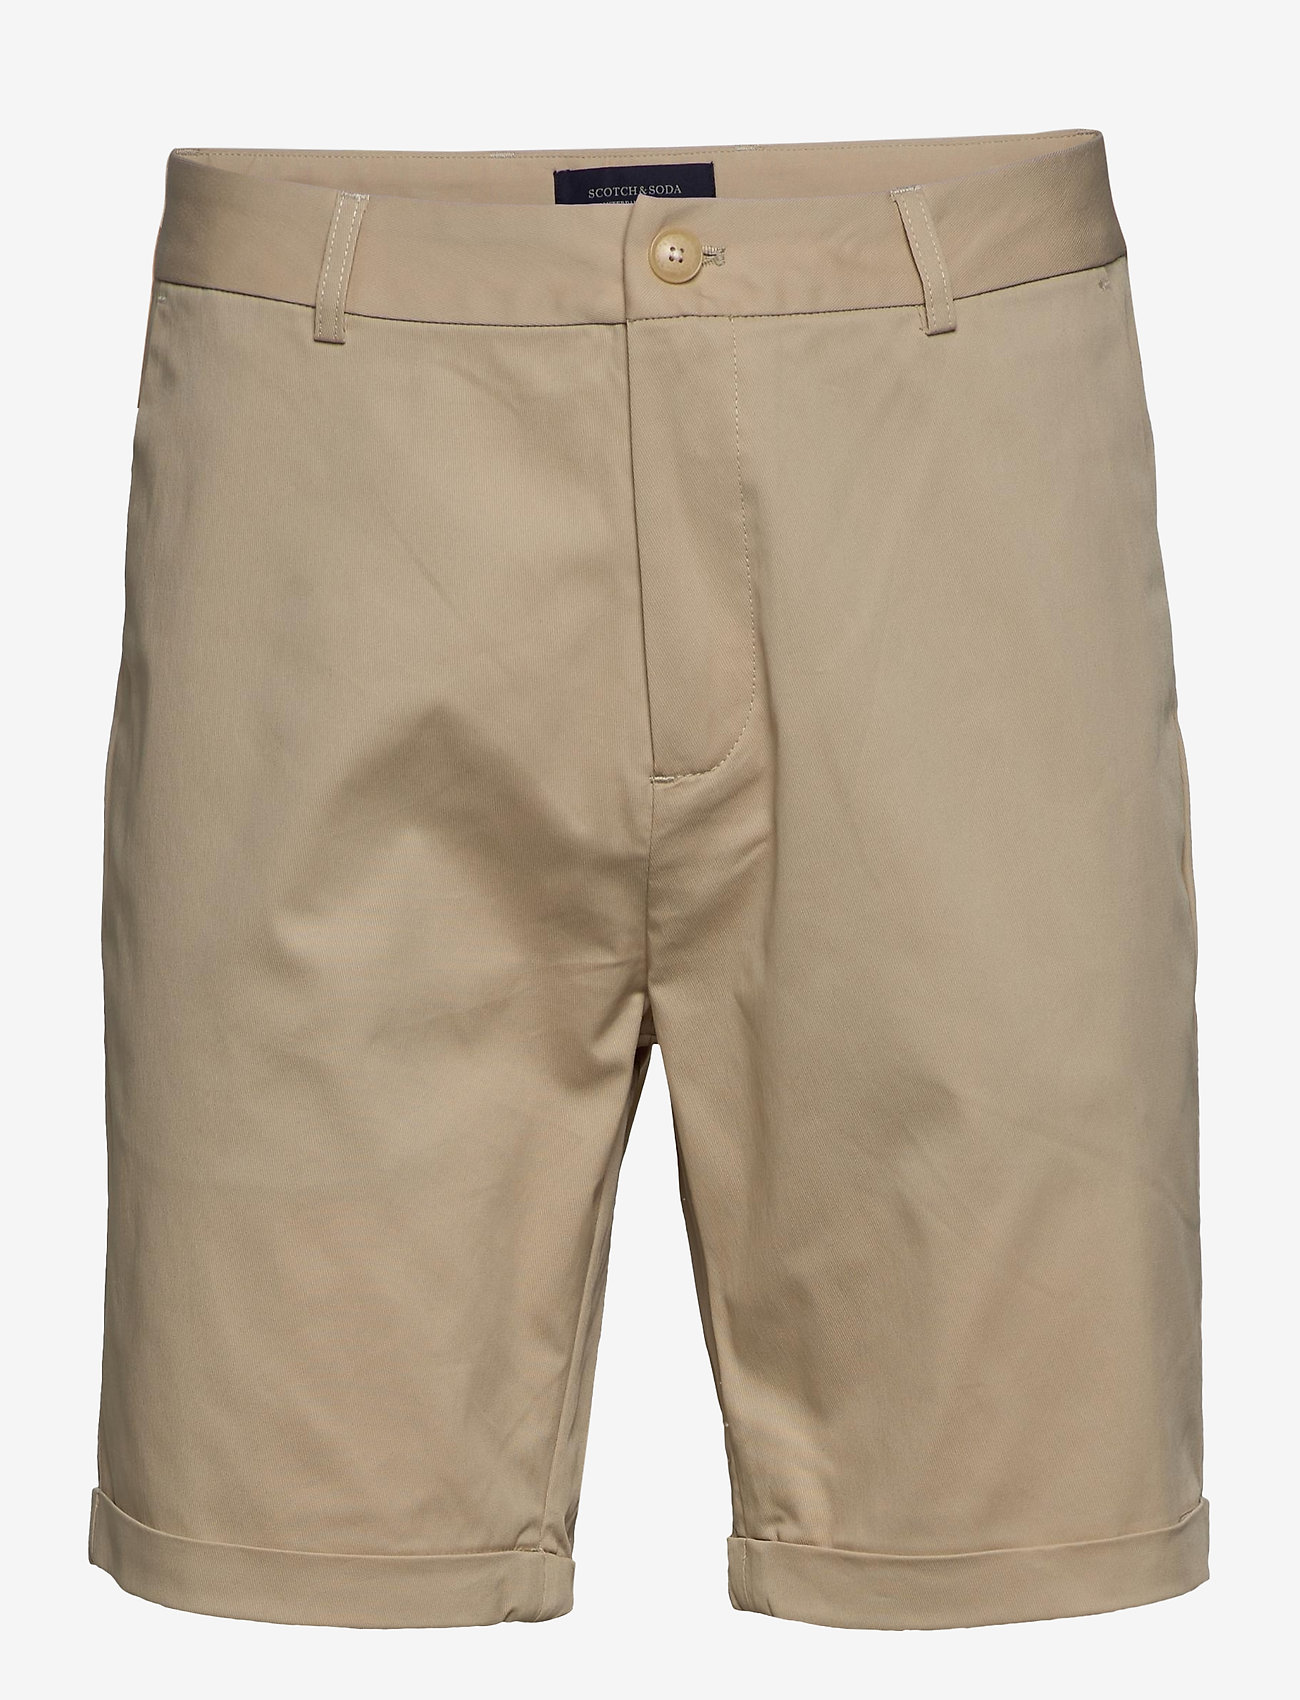 Scotch & Soda - City beach short - chinos shorts - sand - 0